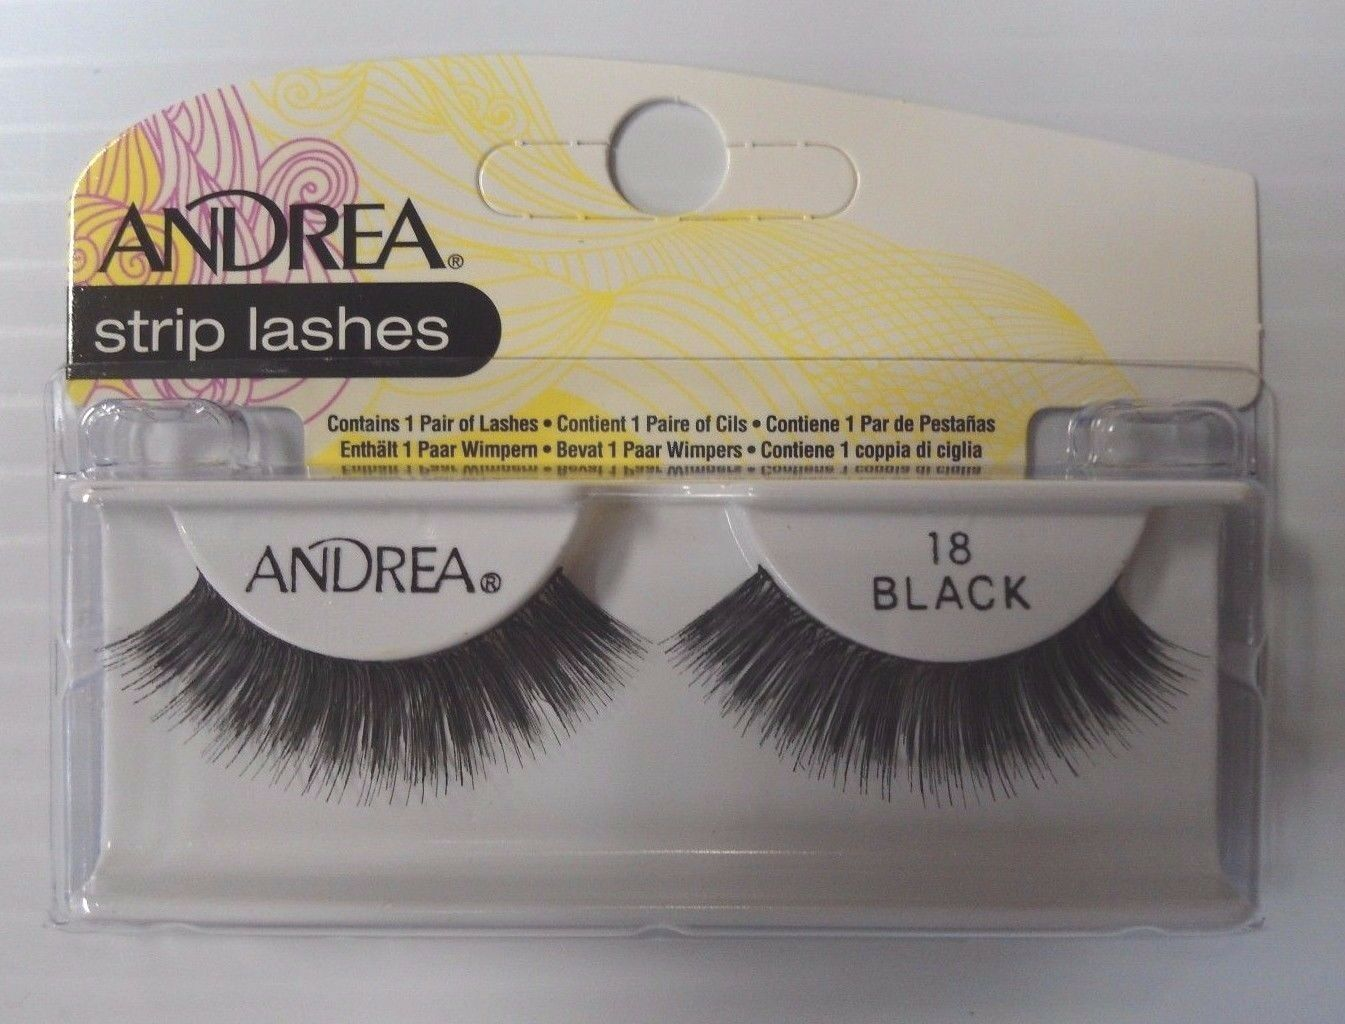 Primary image for Andrea's Strip Lashes Fashion Eye Lash Style 18 Black - (Pack of 4)